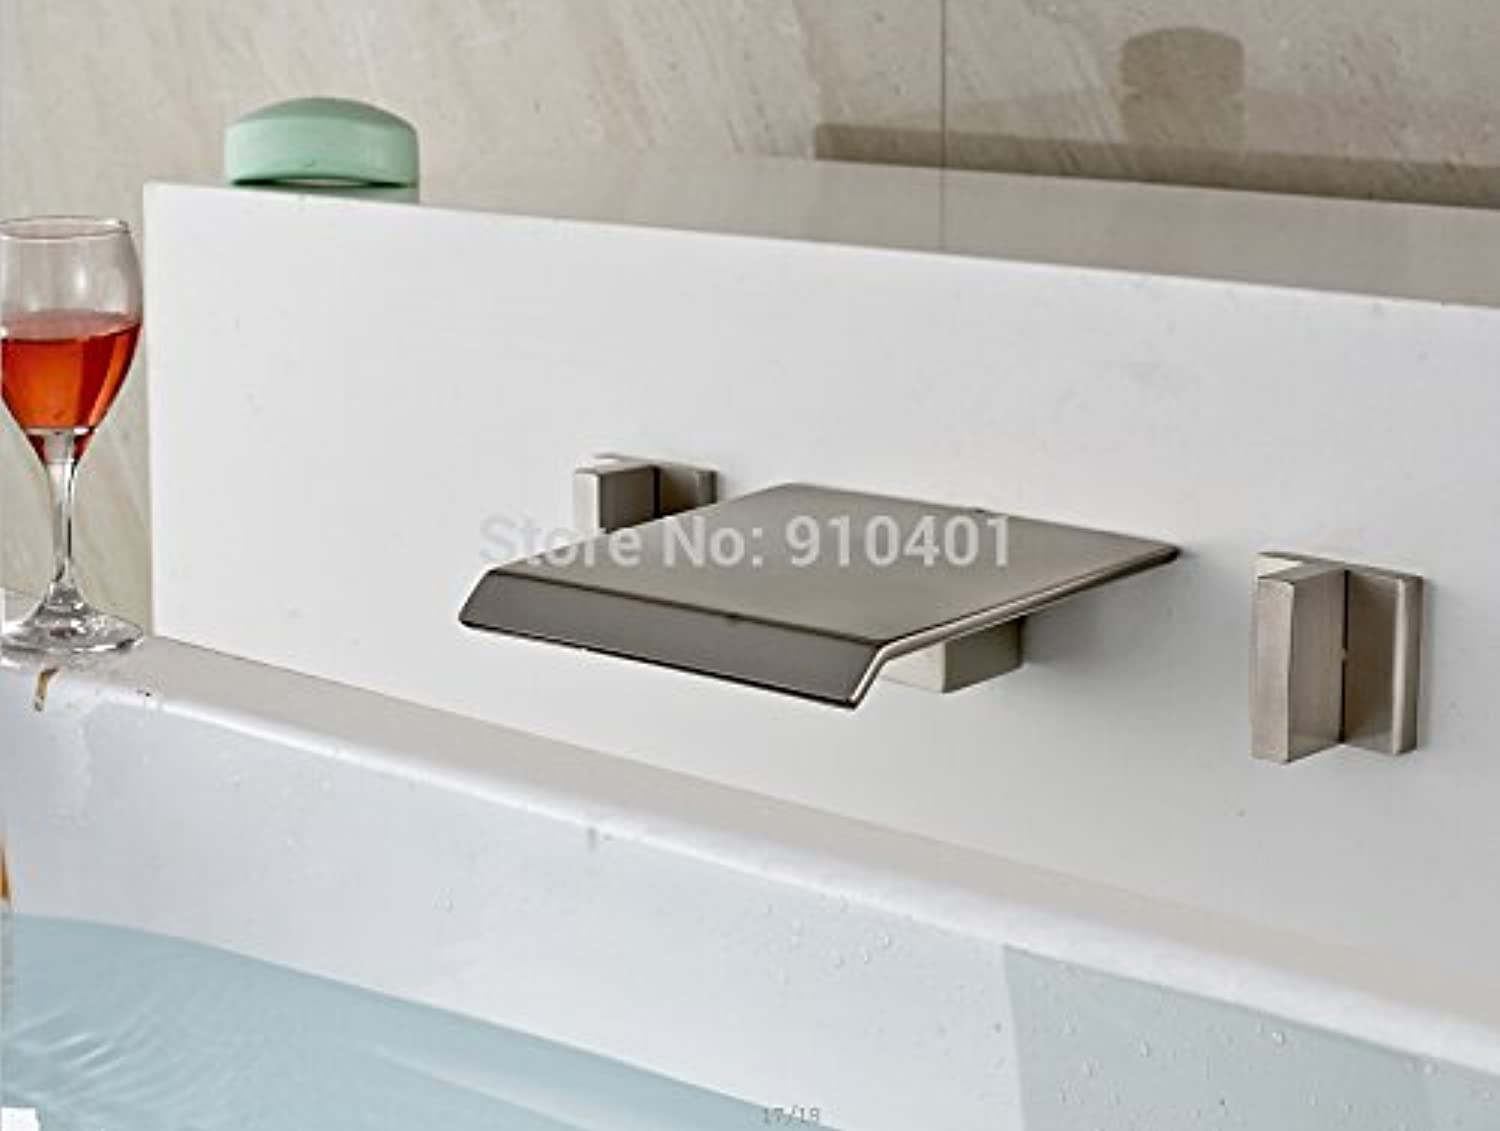 Maifeini The Promotion Of The New Brushed-Nickel Plated Bathroom Wall Mounted Basin Series Plunge Pool Mixer Tap